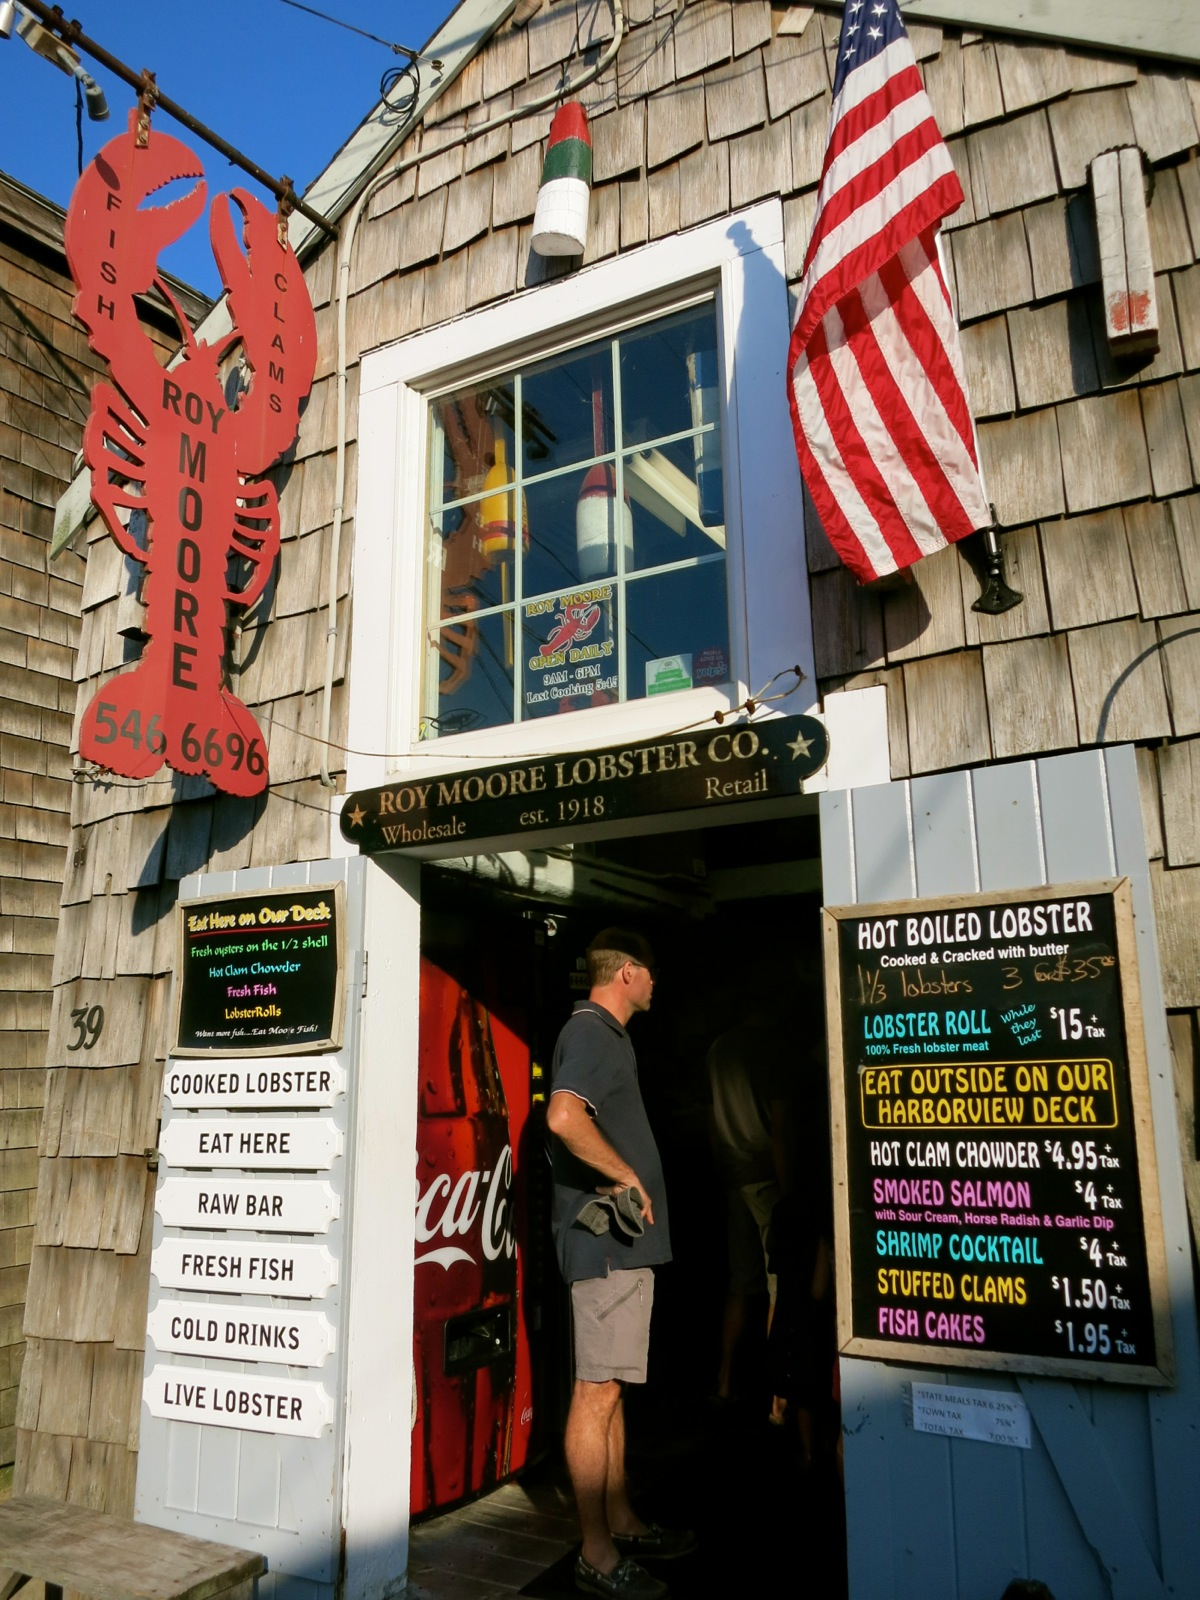 Roy Moore Lobster Co Rockport Ma Save Eat Budget